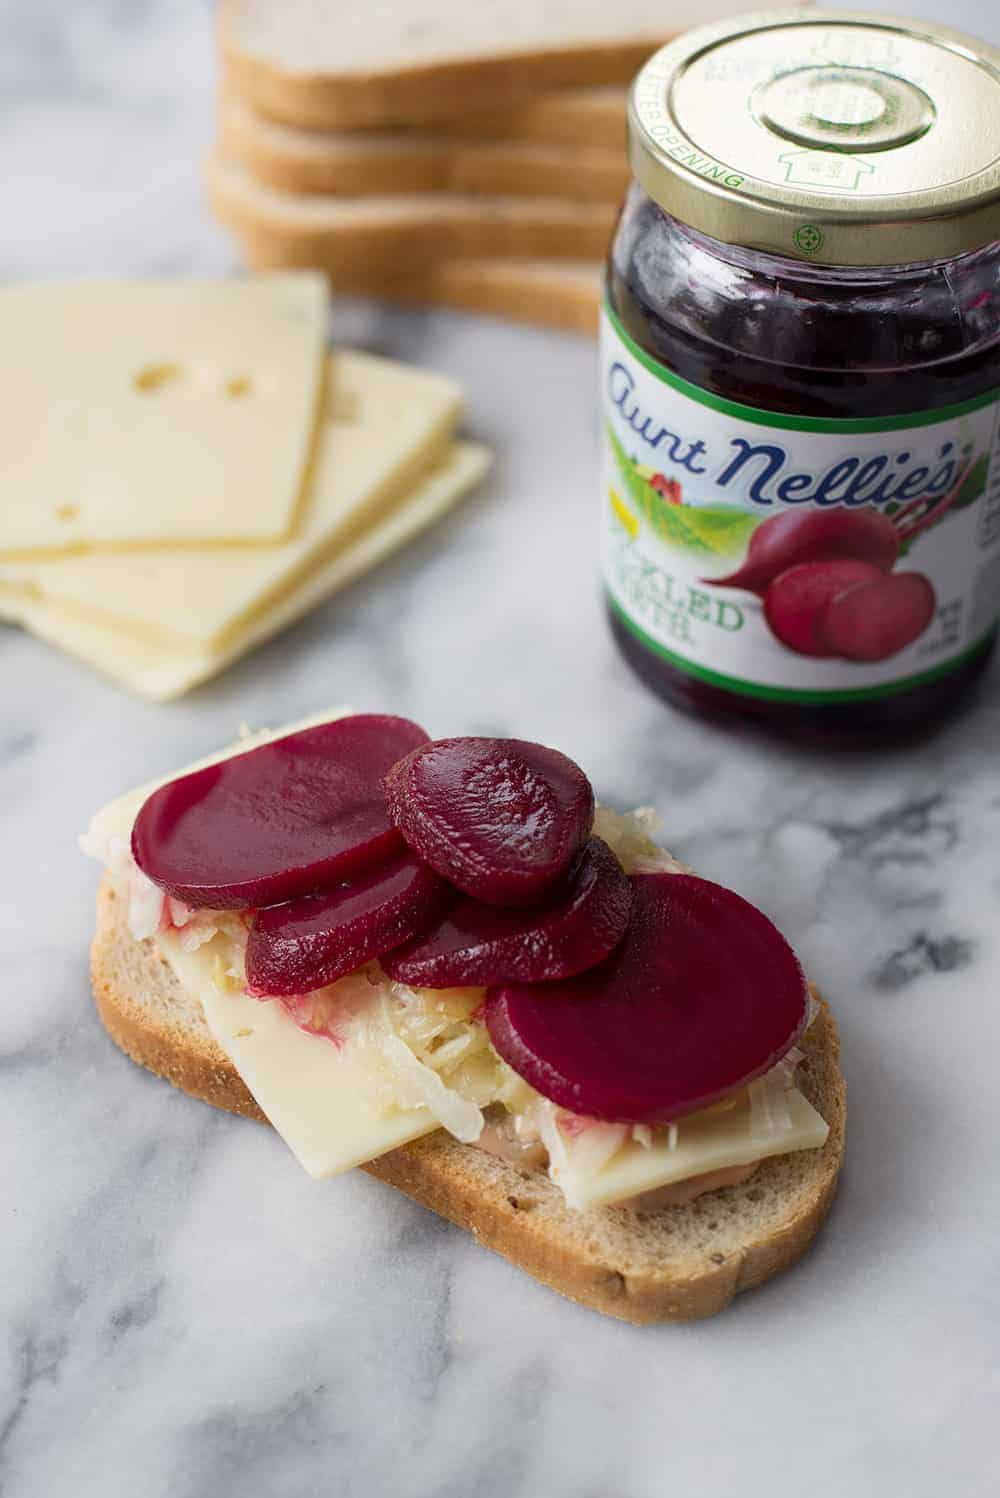 rye bread with sauerkraut, swiss cheese and pickled beets